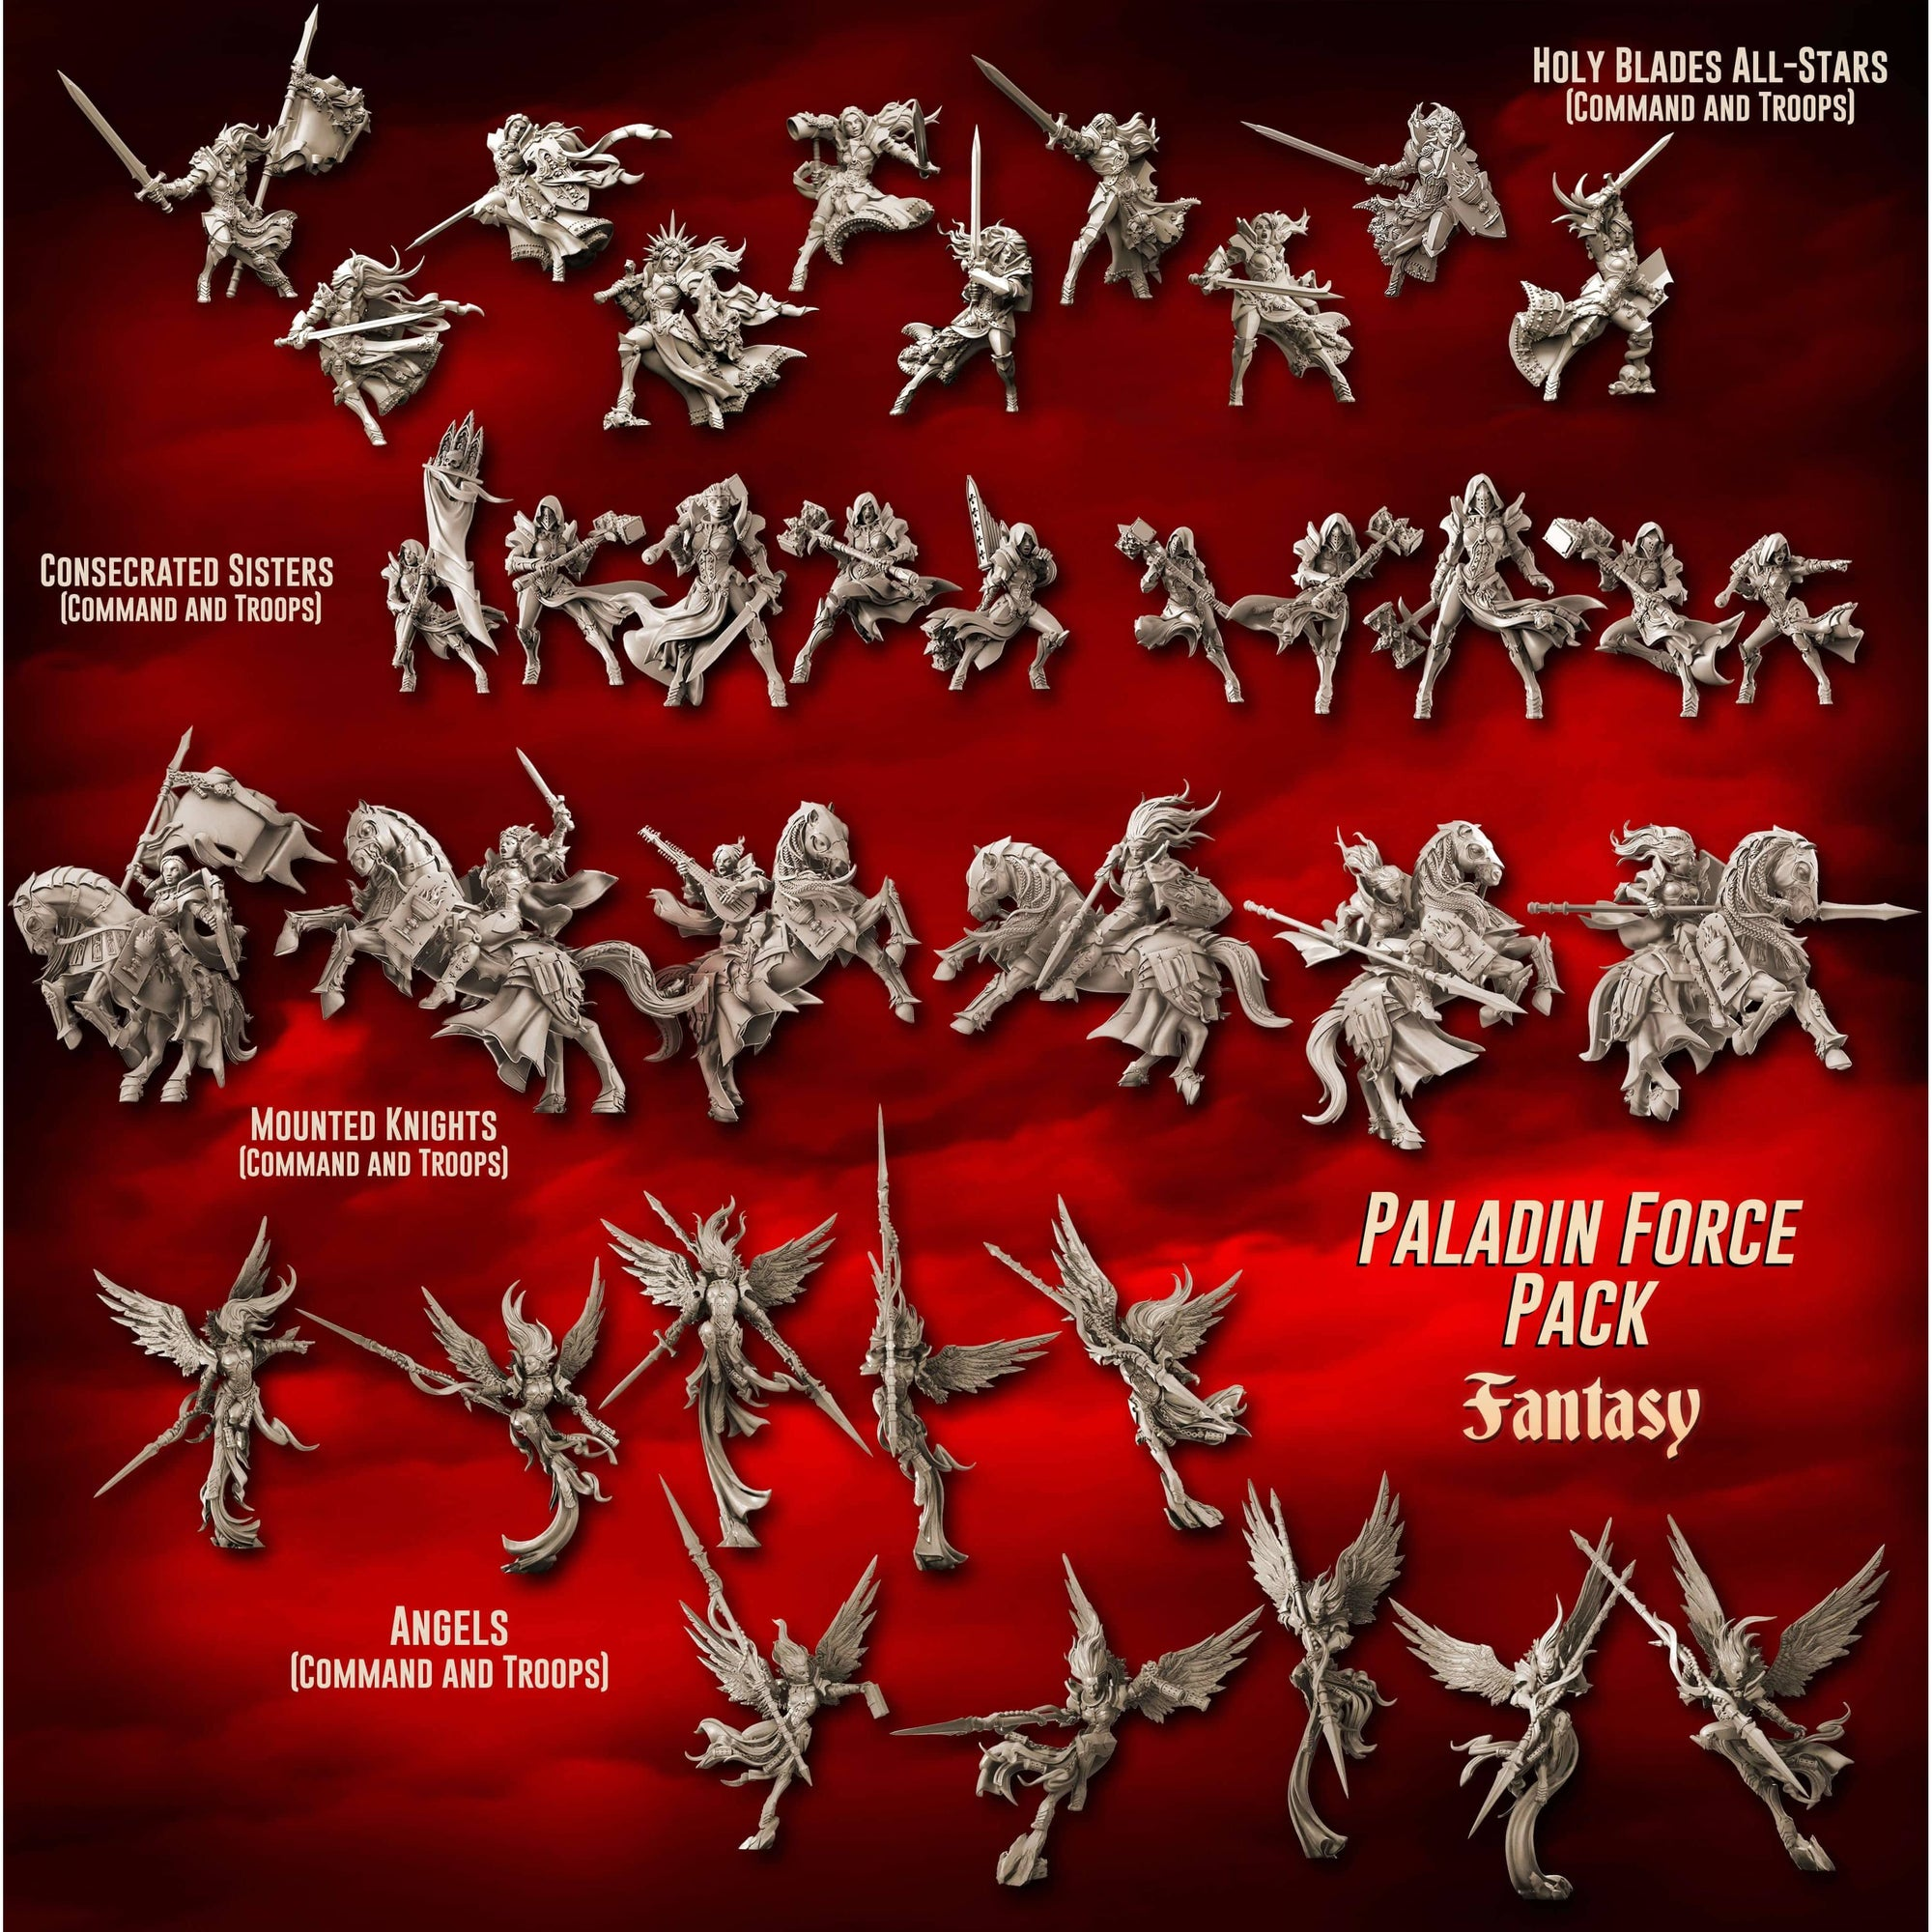 Paladin Force Pack (SotO – F)